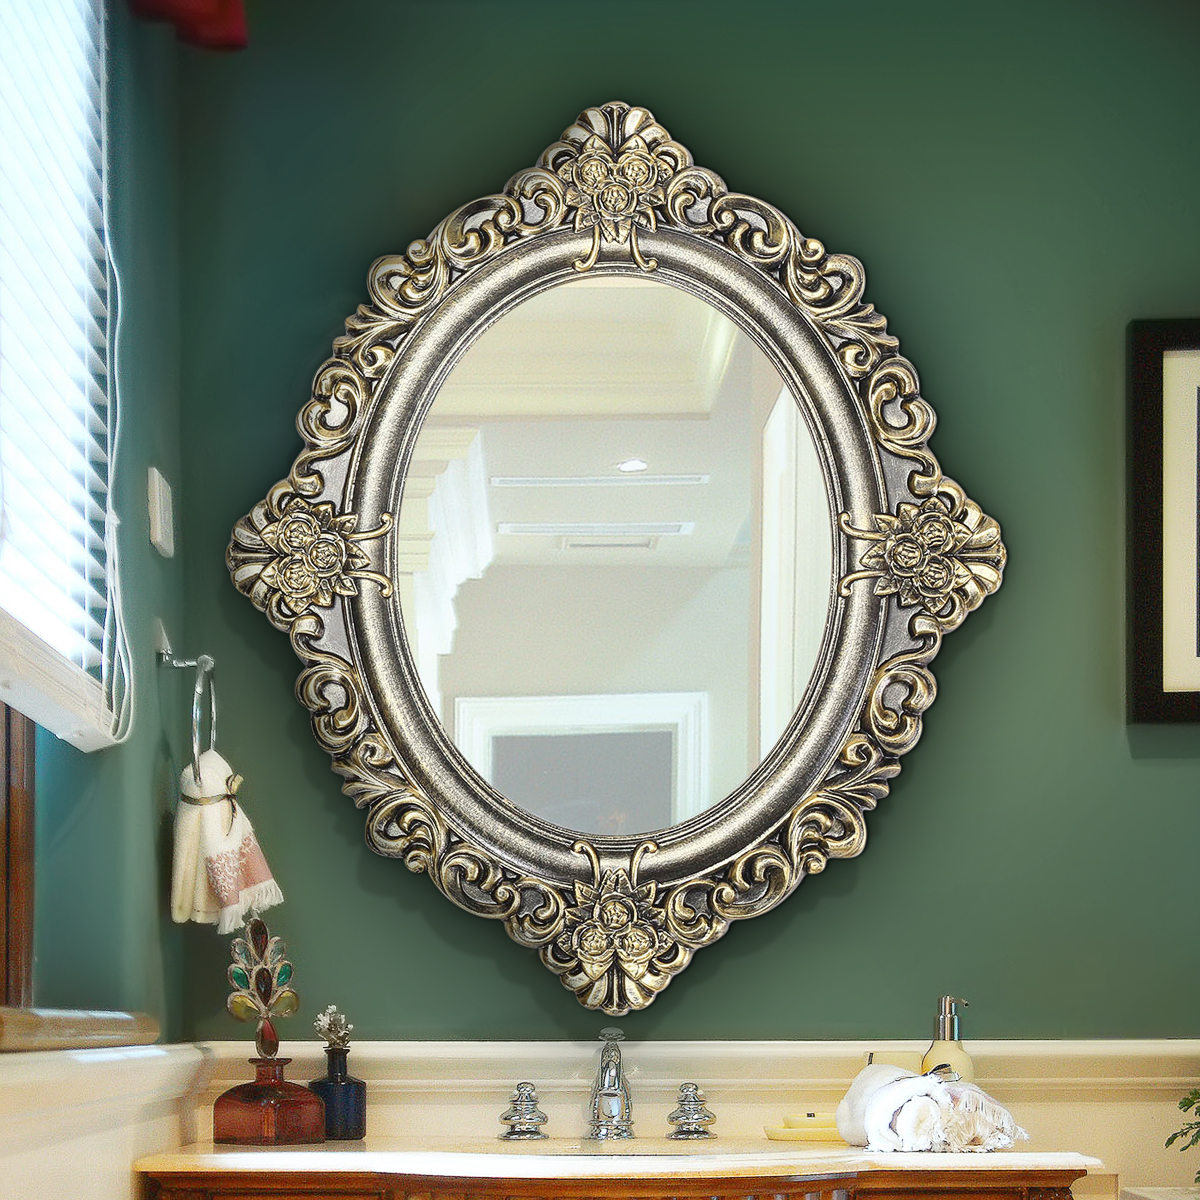 23 Inch Oval Decorative Mirrors Retro Vintage Wall Mouted ...